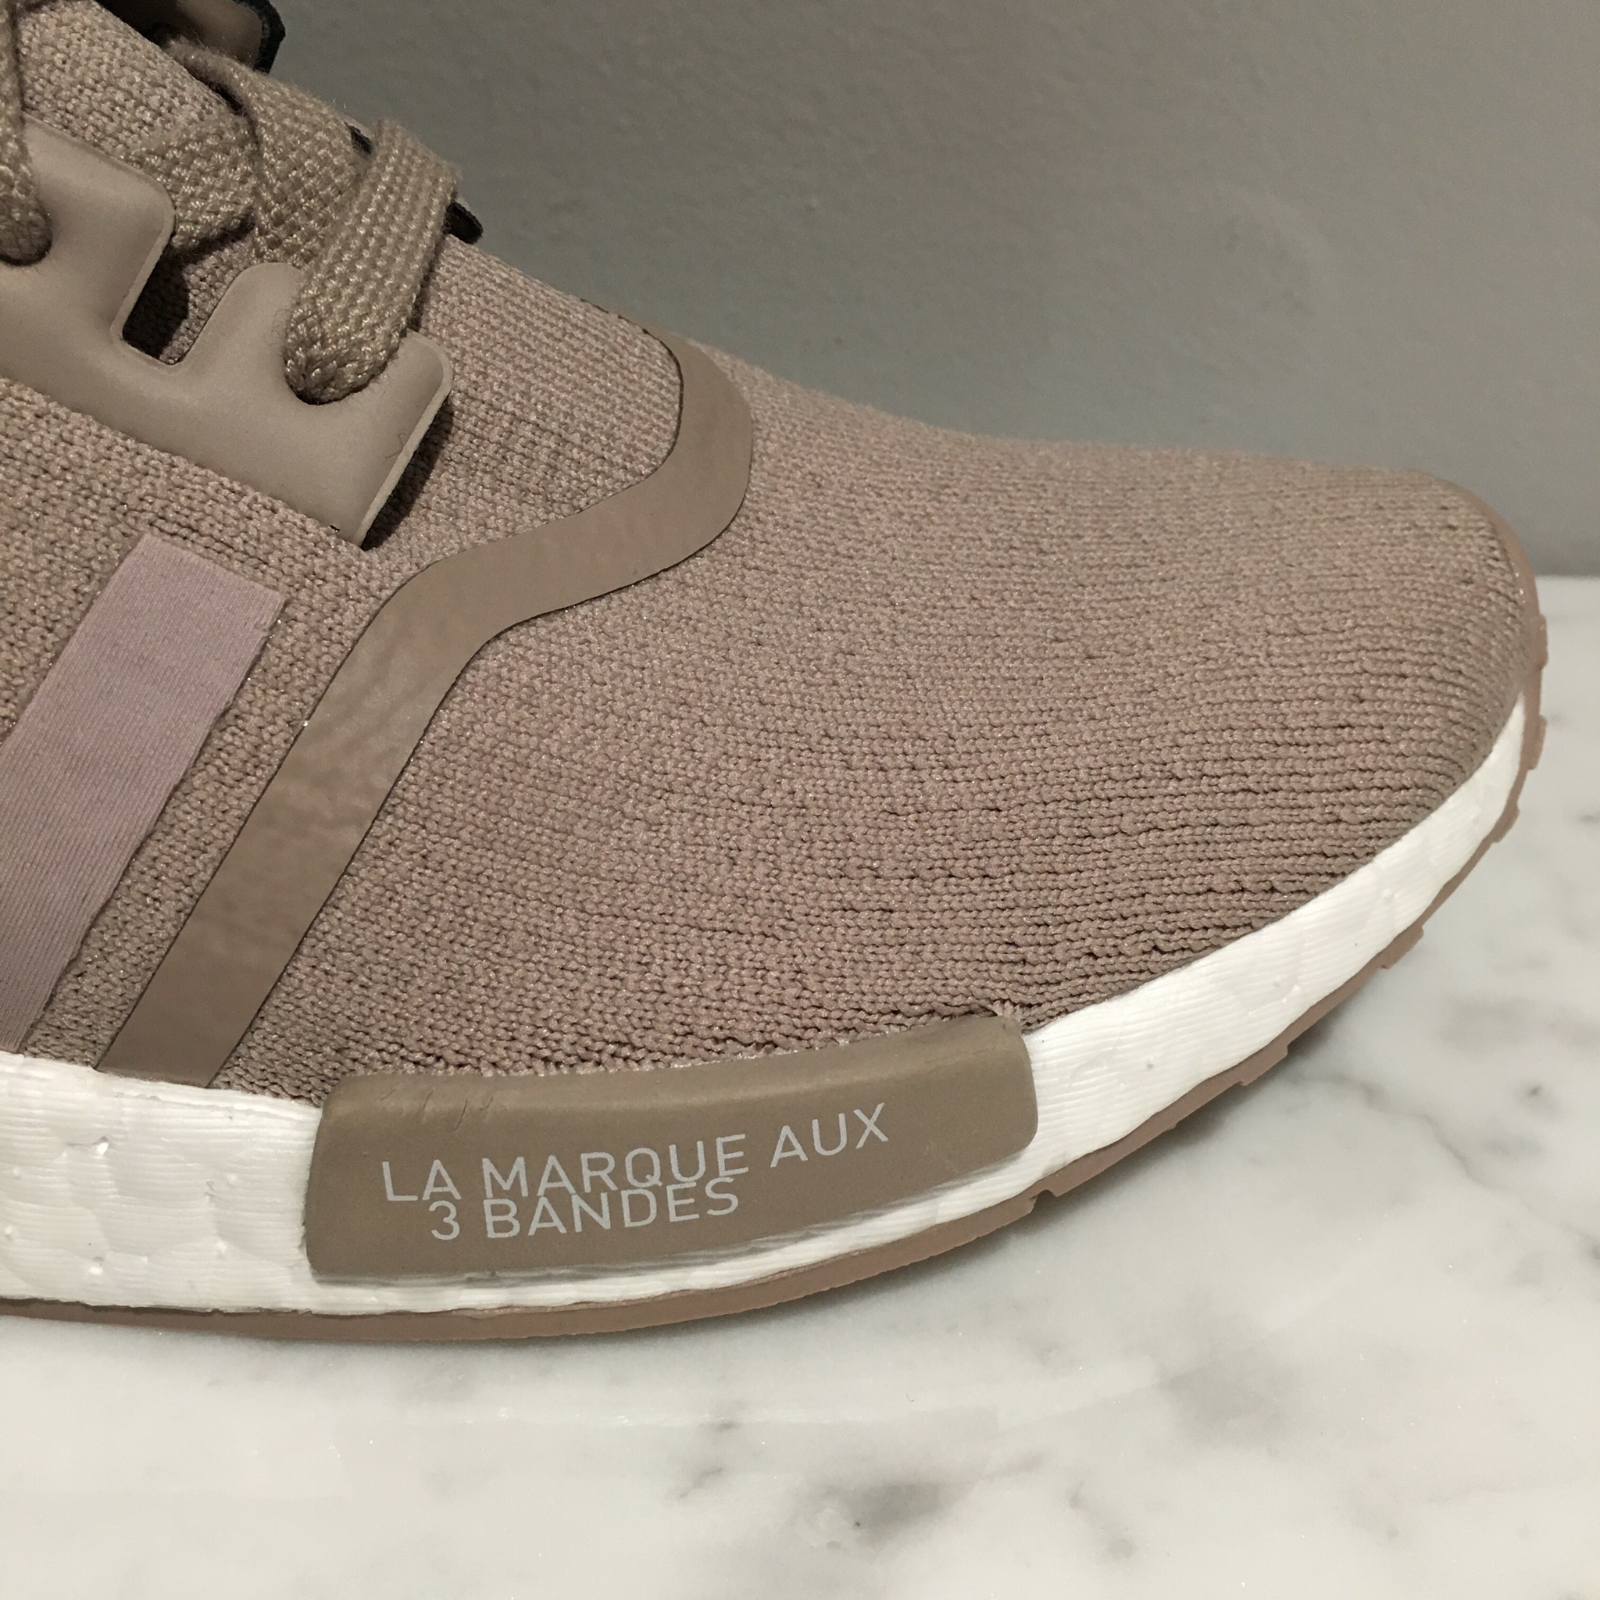 474a35f986e8 Adidas Nmd R1 Pk  french Beige  - S81848 - Vapour Grey Primeknit 3 3 of 5  ...